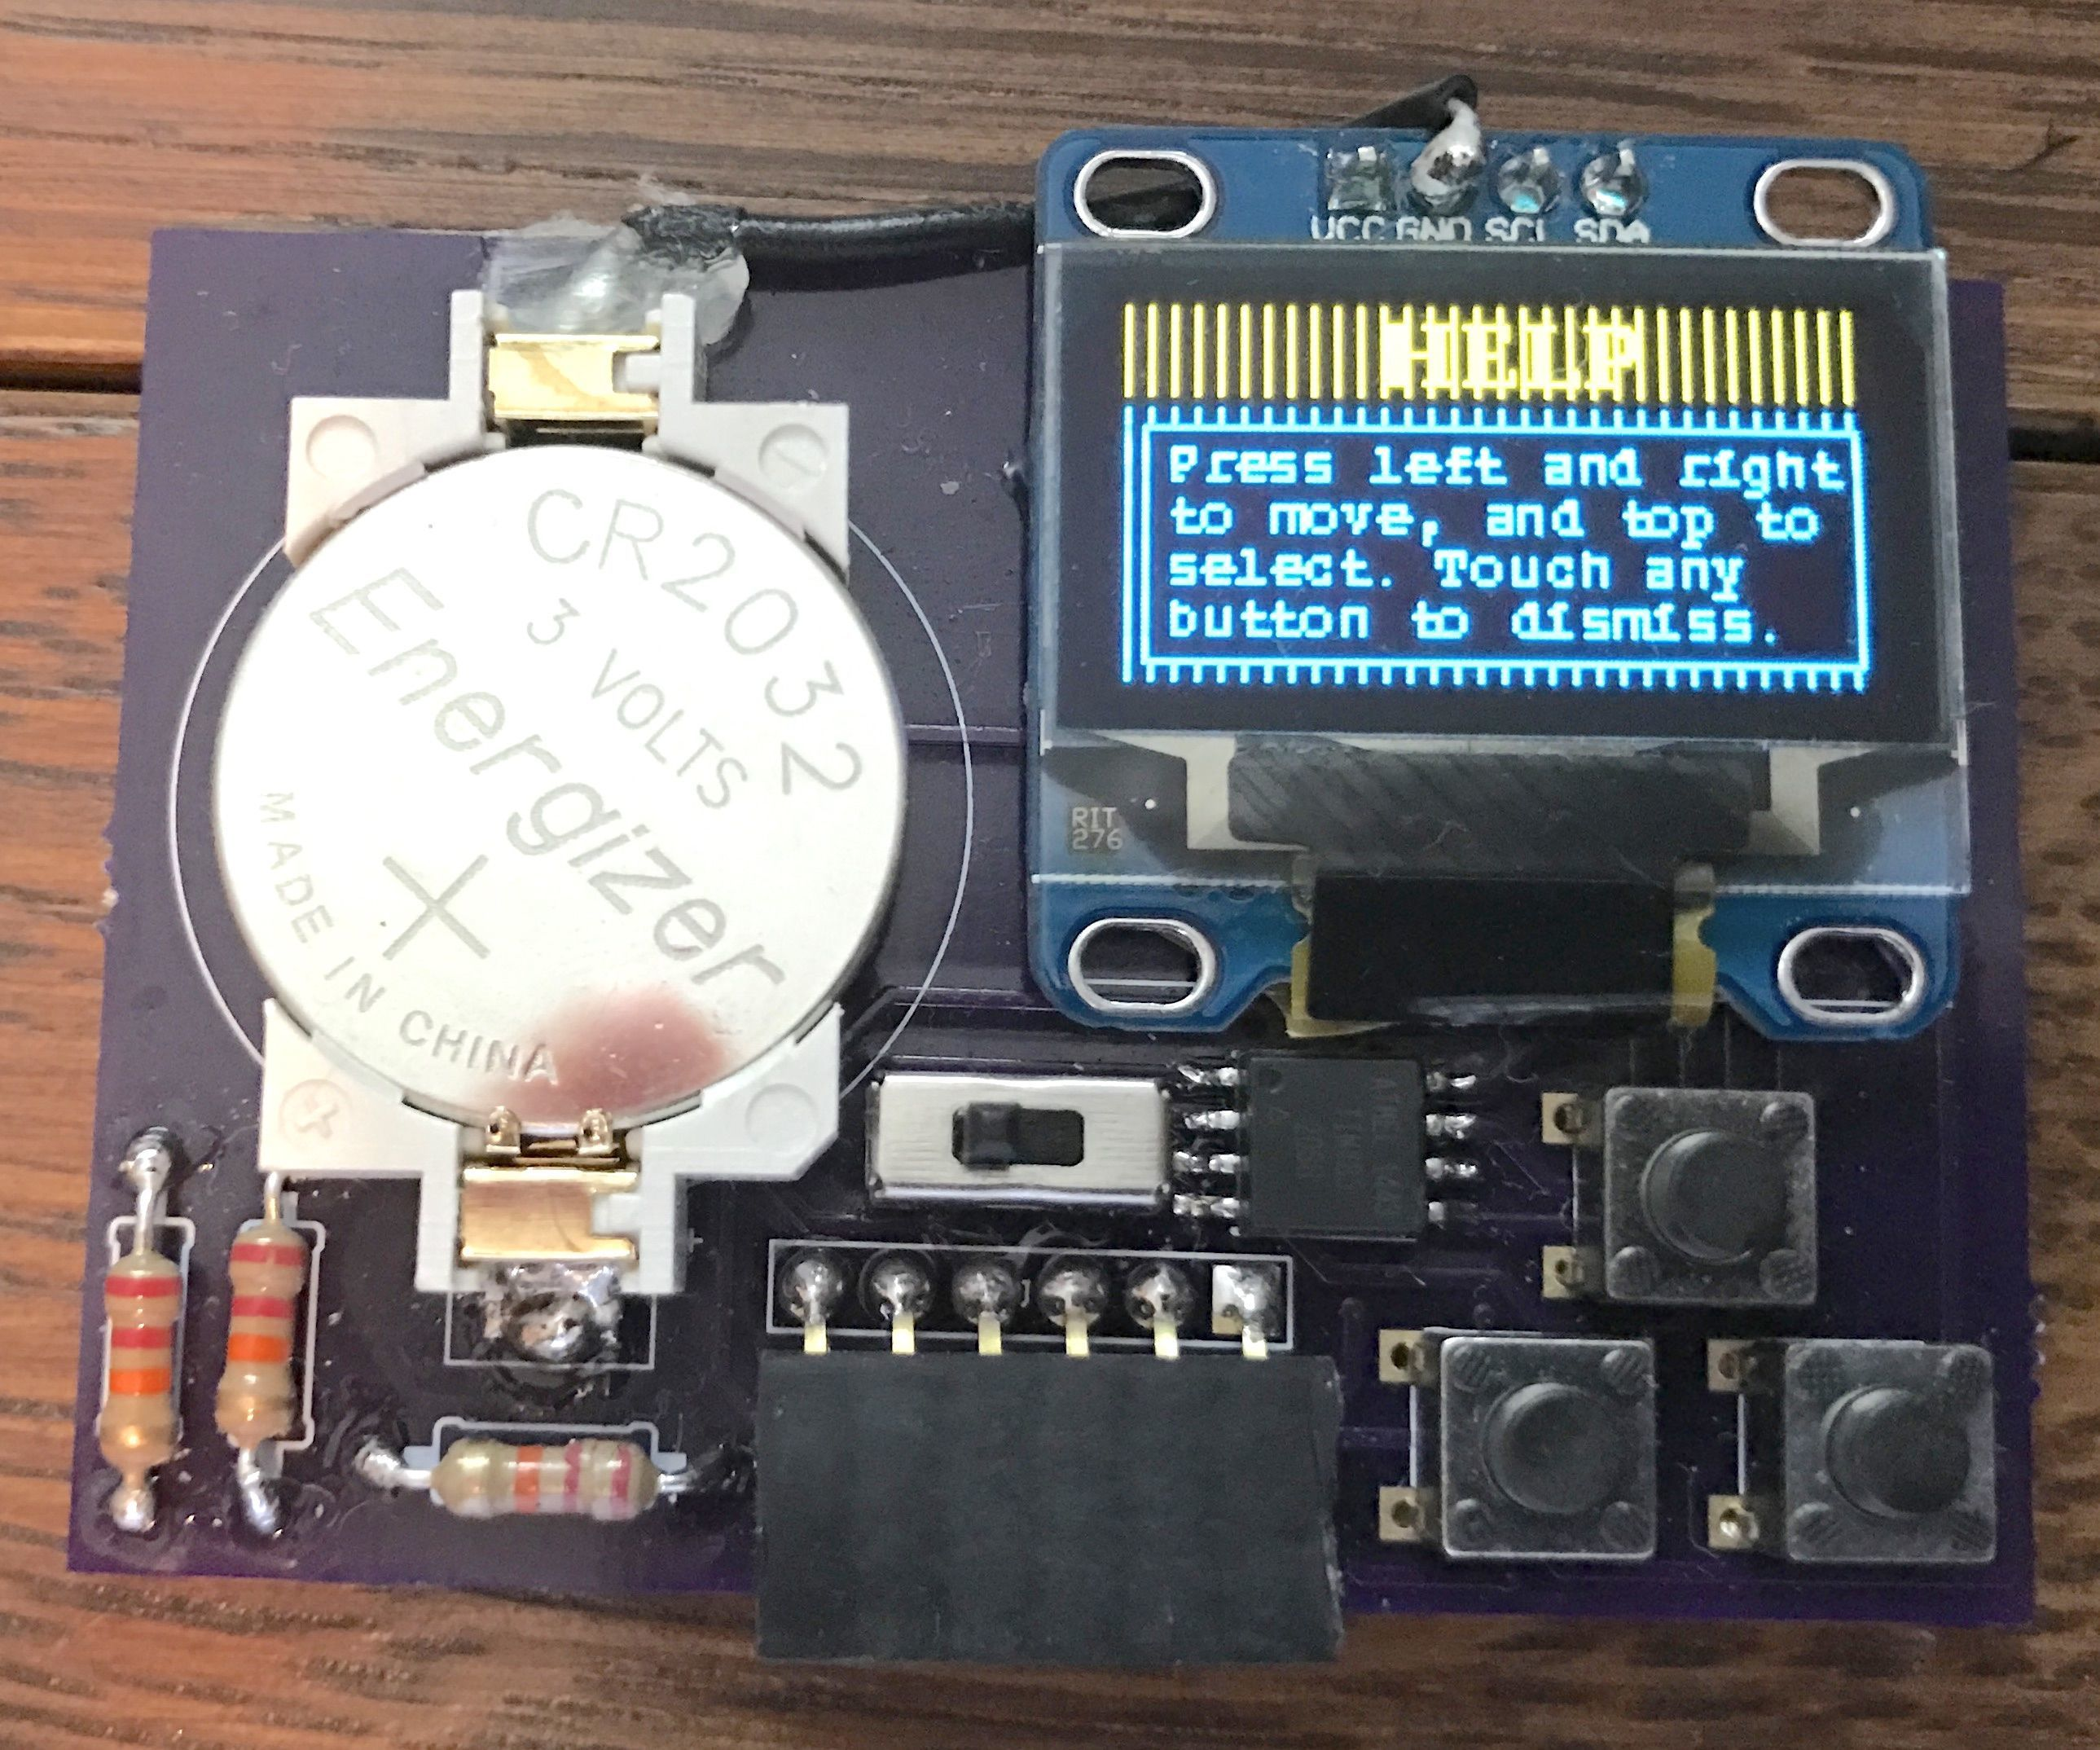 Business Card/Game Console: ATtiny85 and OLED Screen